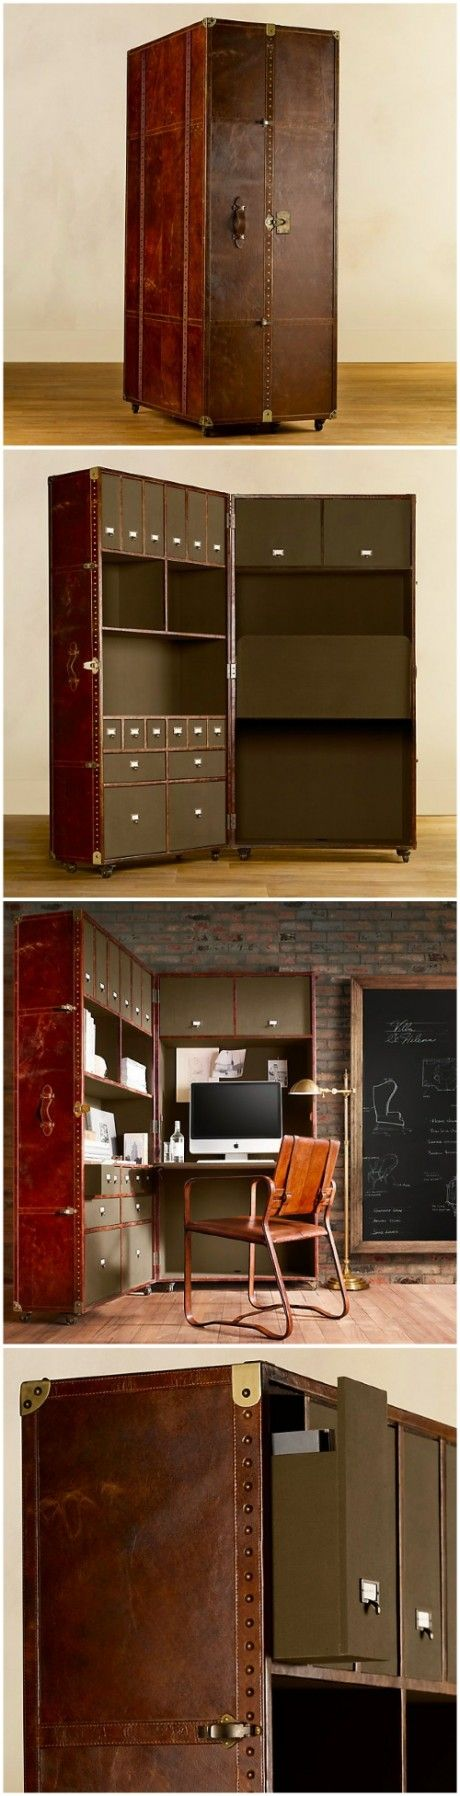 Suitcase file cabinet: Designed by Timothy Oulton, an antique furniture  dealer in London. The file cabinet looks like a big flat suitcase. - 91 Best Wonderbread Office Images On Pinterest Accent Chairs, At